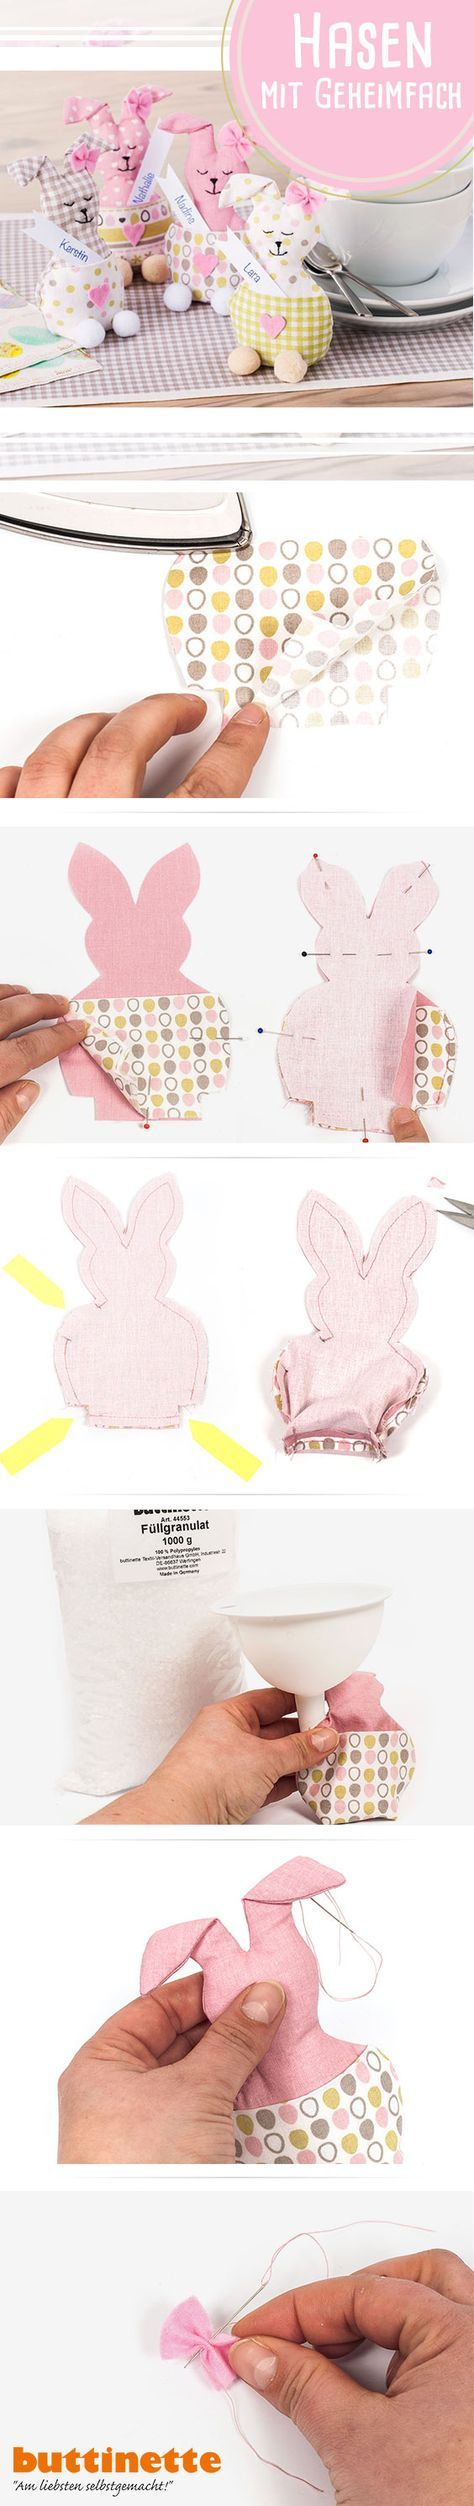 56 best Nähen für Ostern images on Pinterest | Easter crafts ...